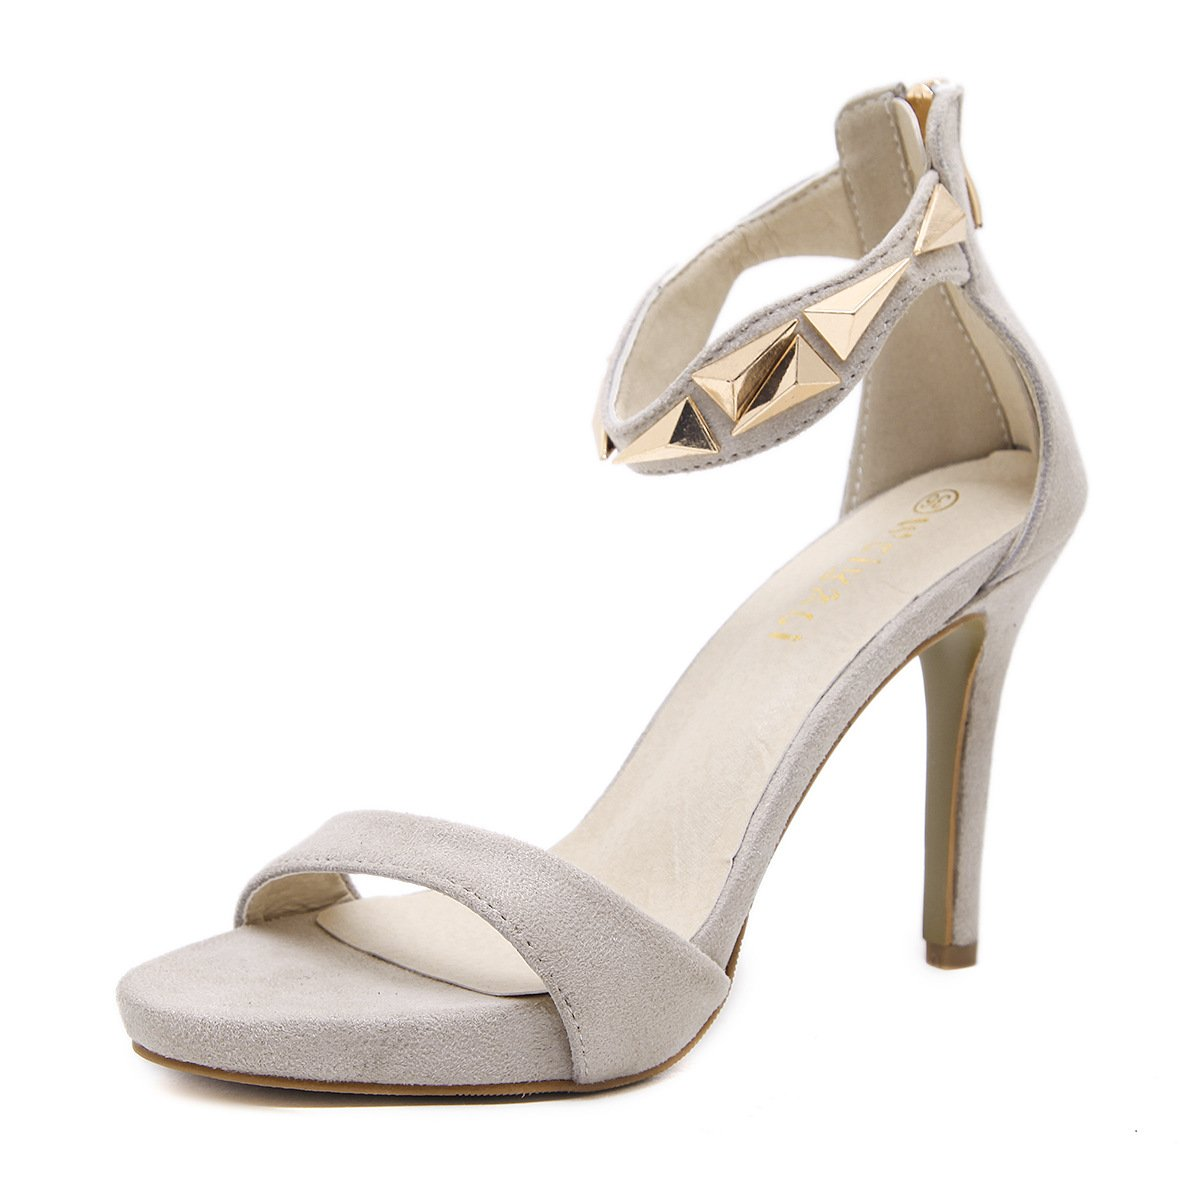 summer European and American fashion high heel sandals and comfortable sandals. RUGAI-UE Ladies with High Heels Sandals